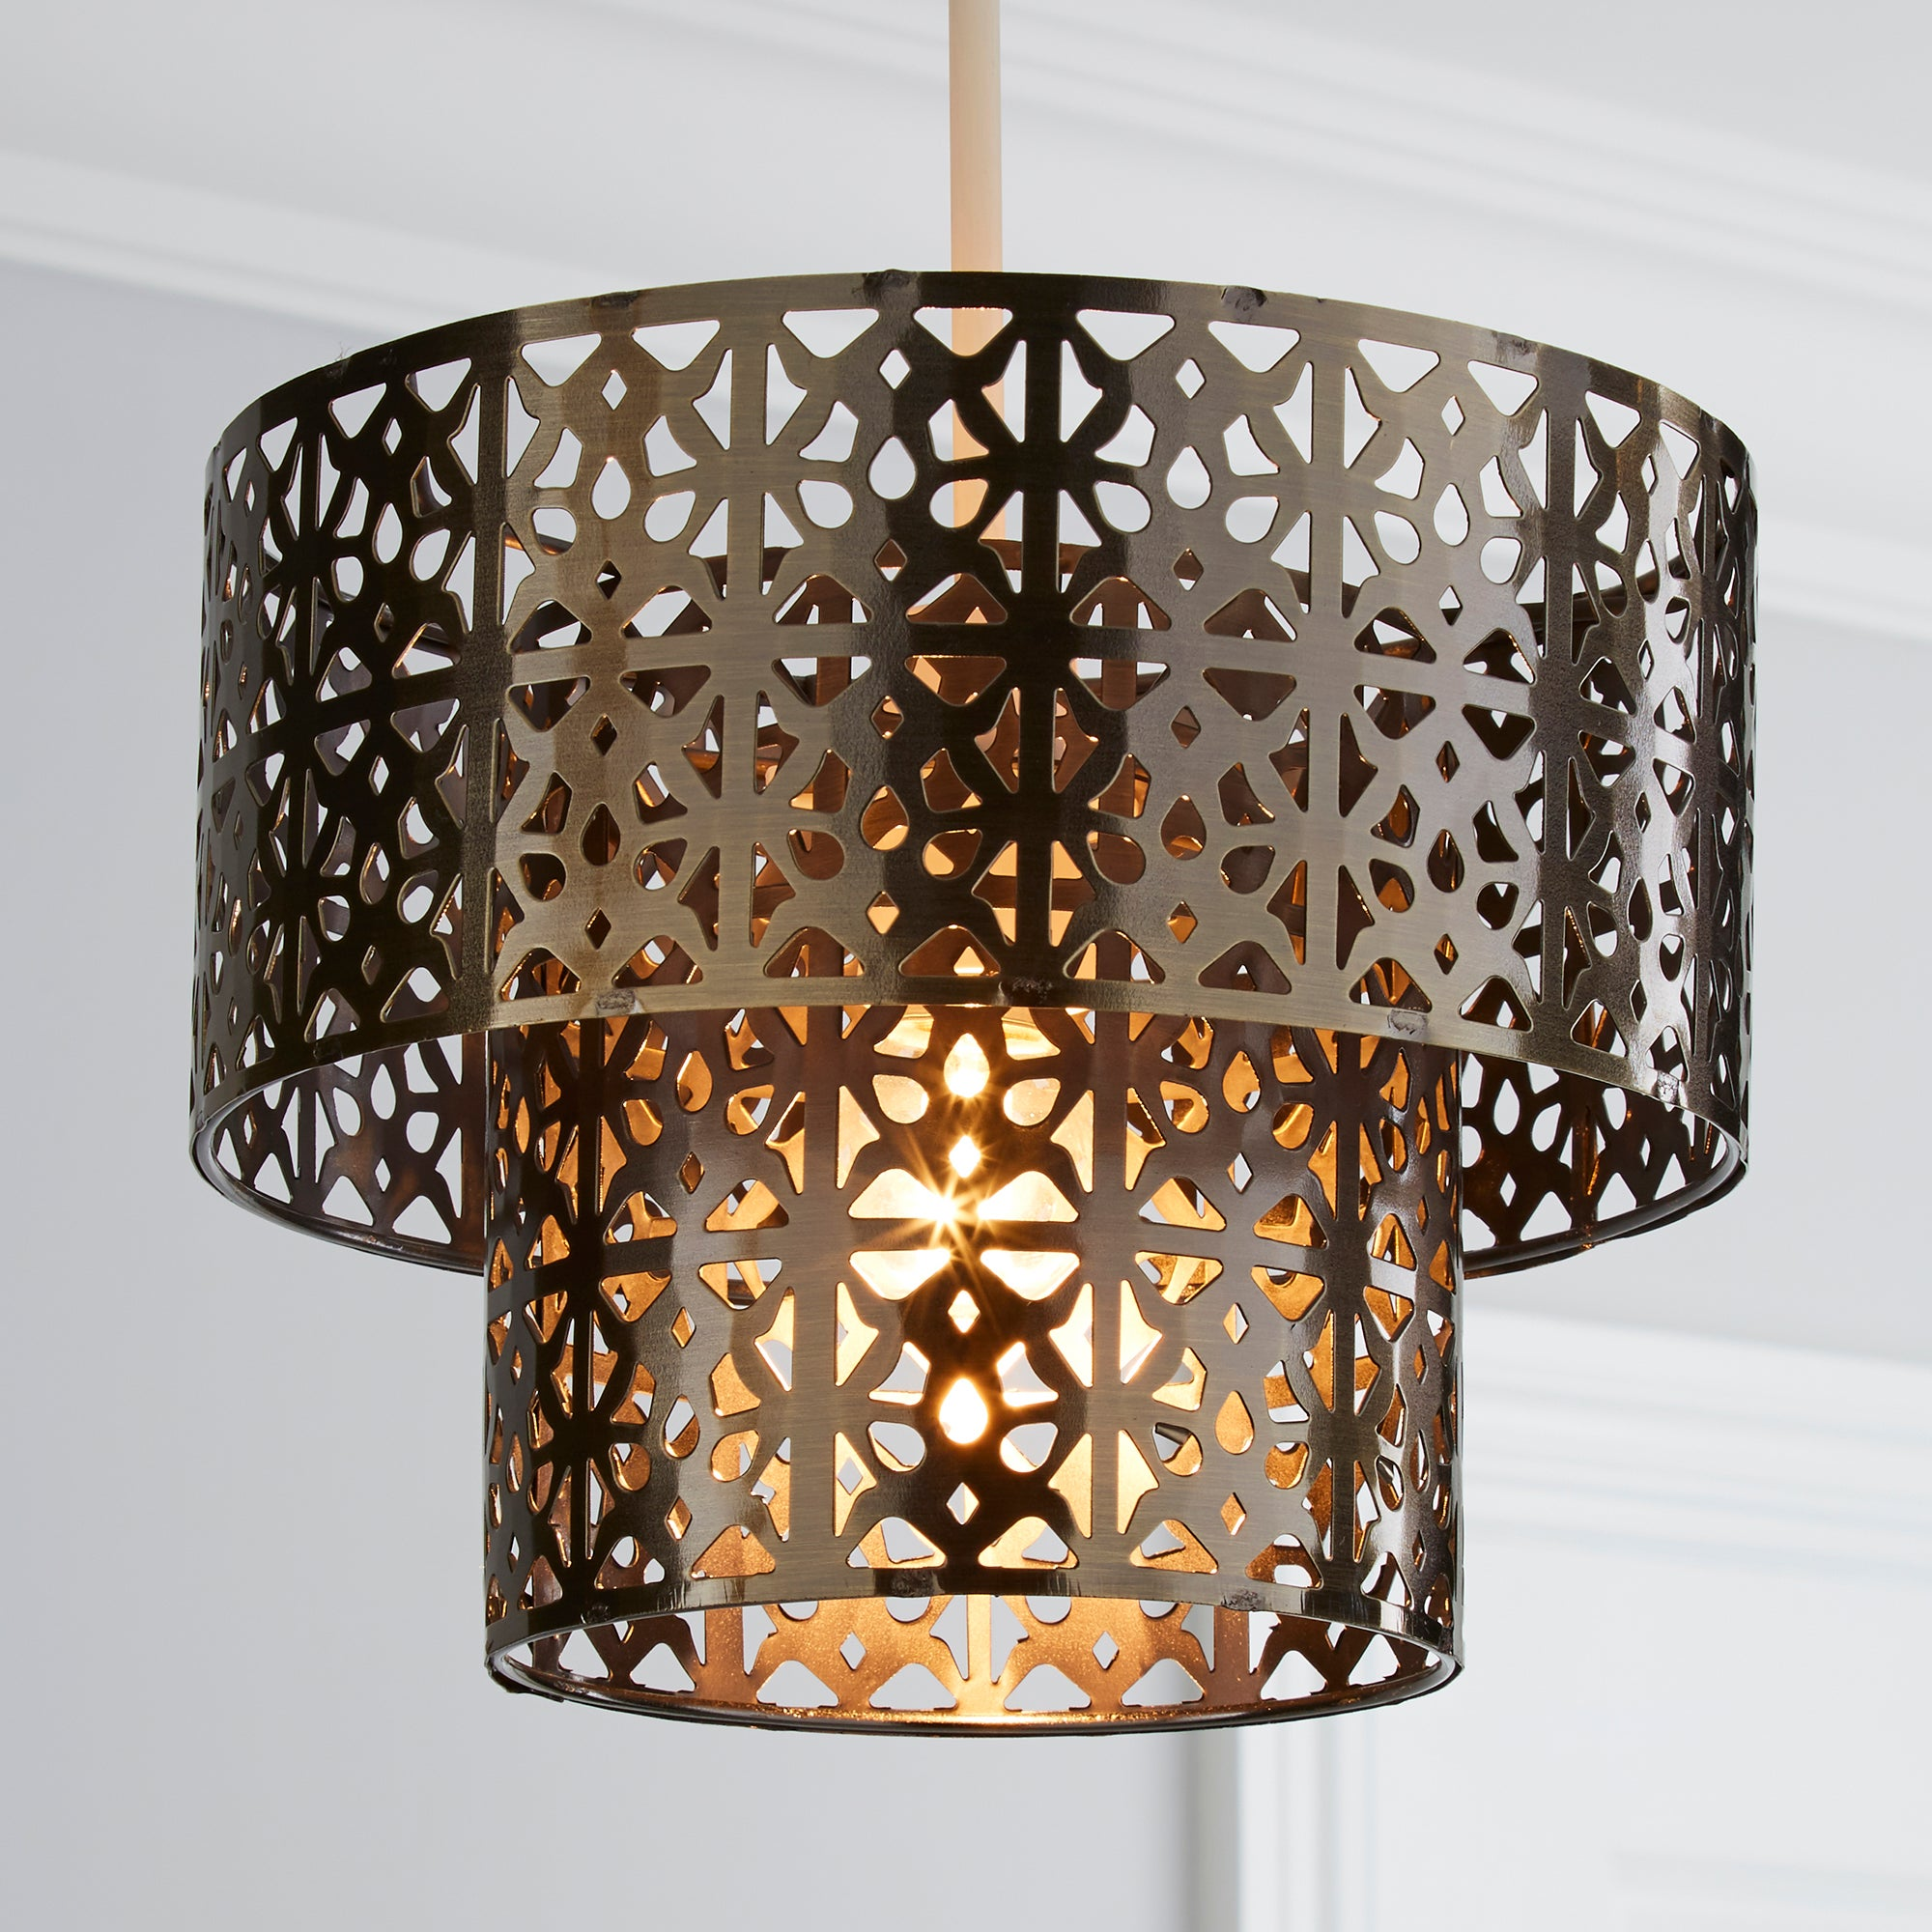 Cut Out Metal 2 Tier Pendant